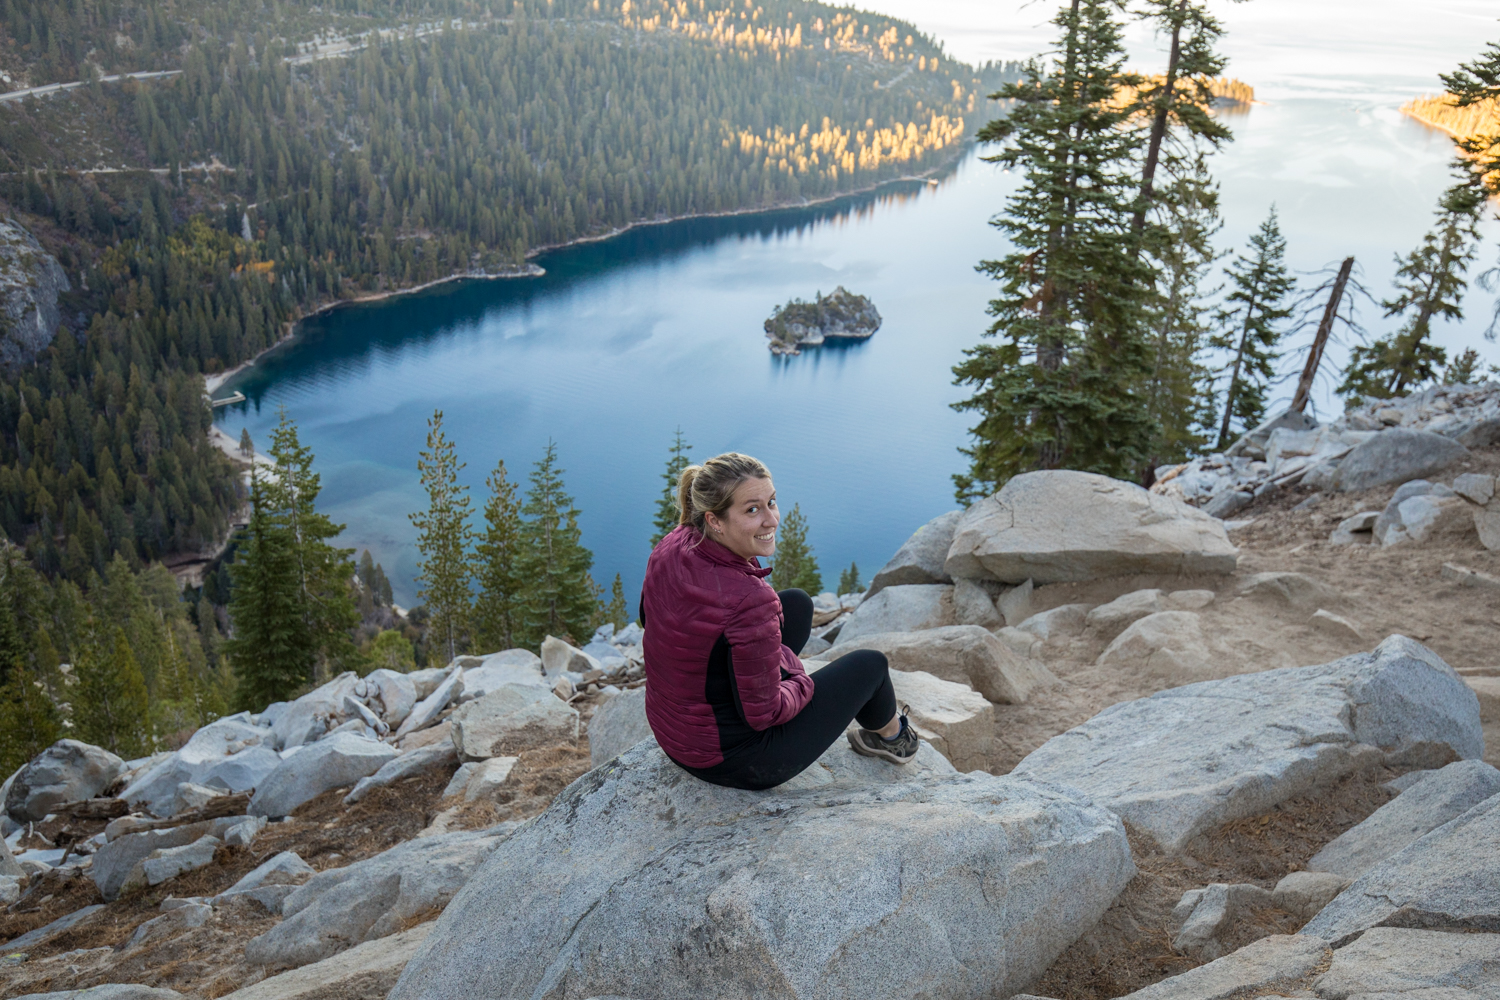 Lake Tahoe Hiking Guide | Bayview Trail | Granite Lake | Maggie's Peaks | Desolation Wilderness | Emerald Bay | Catherine Chicotka